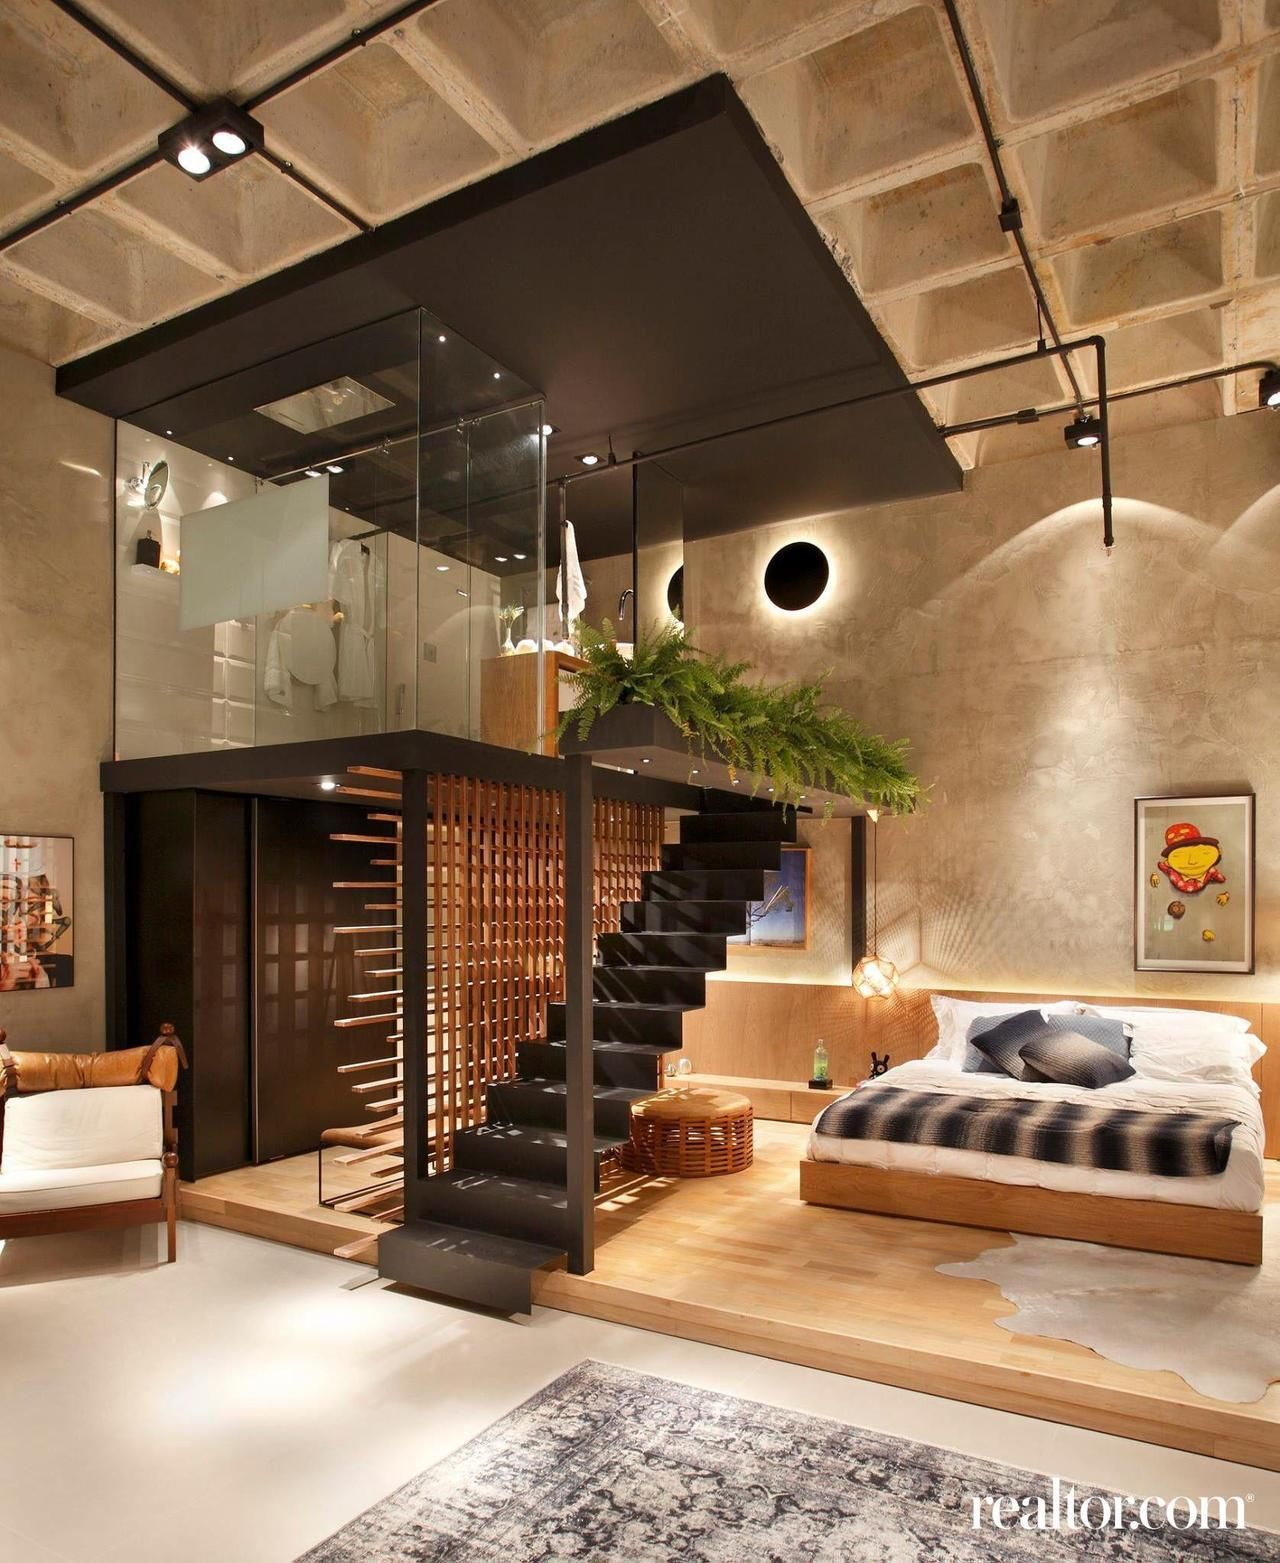 Best Of Interior Design And Architecture Ideas Loft Design Minimalism Interior Modern Loft